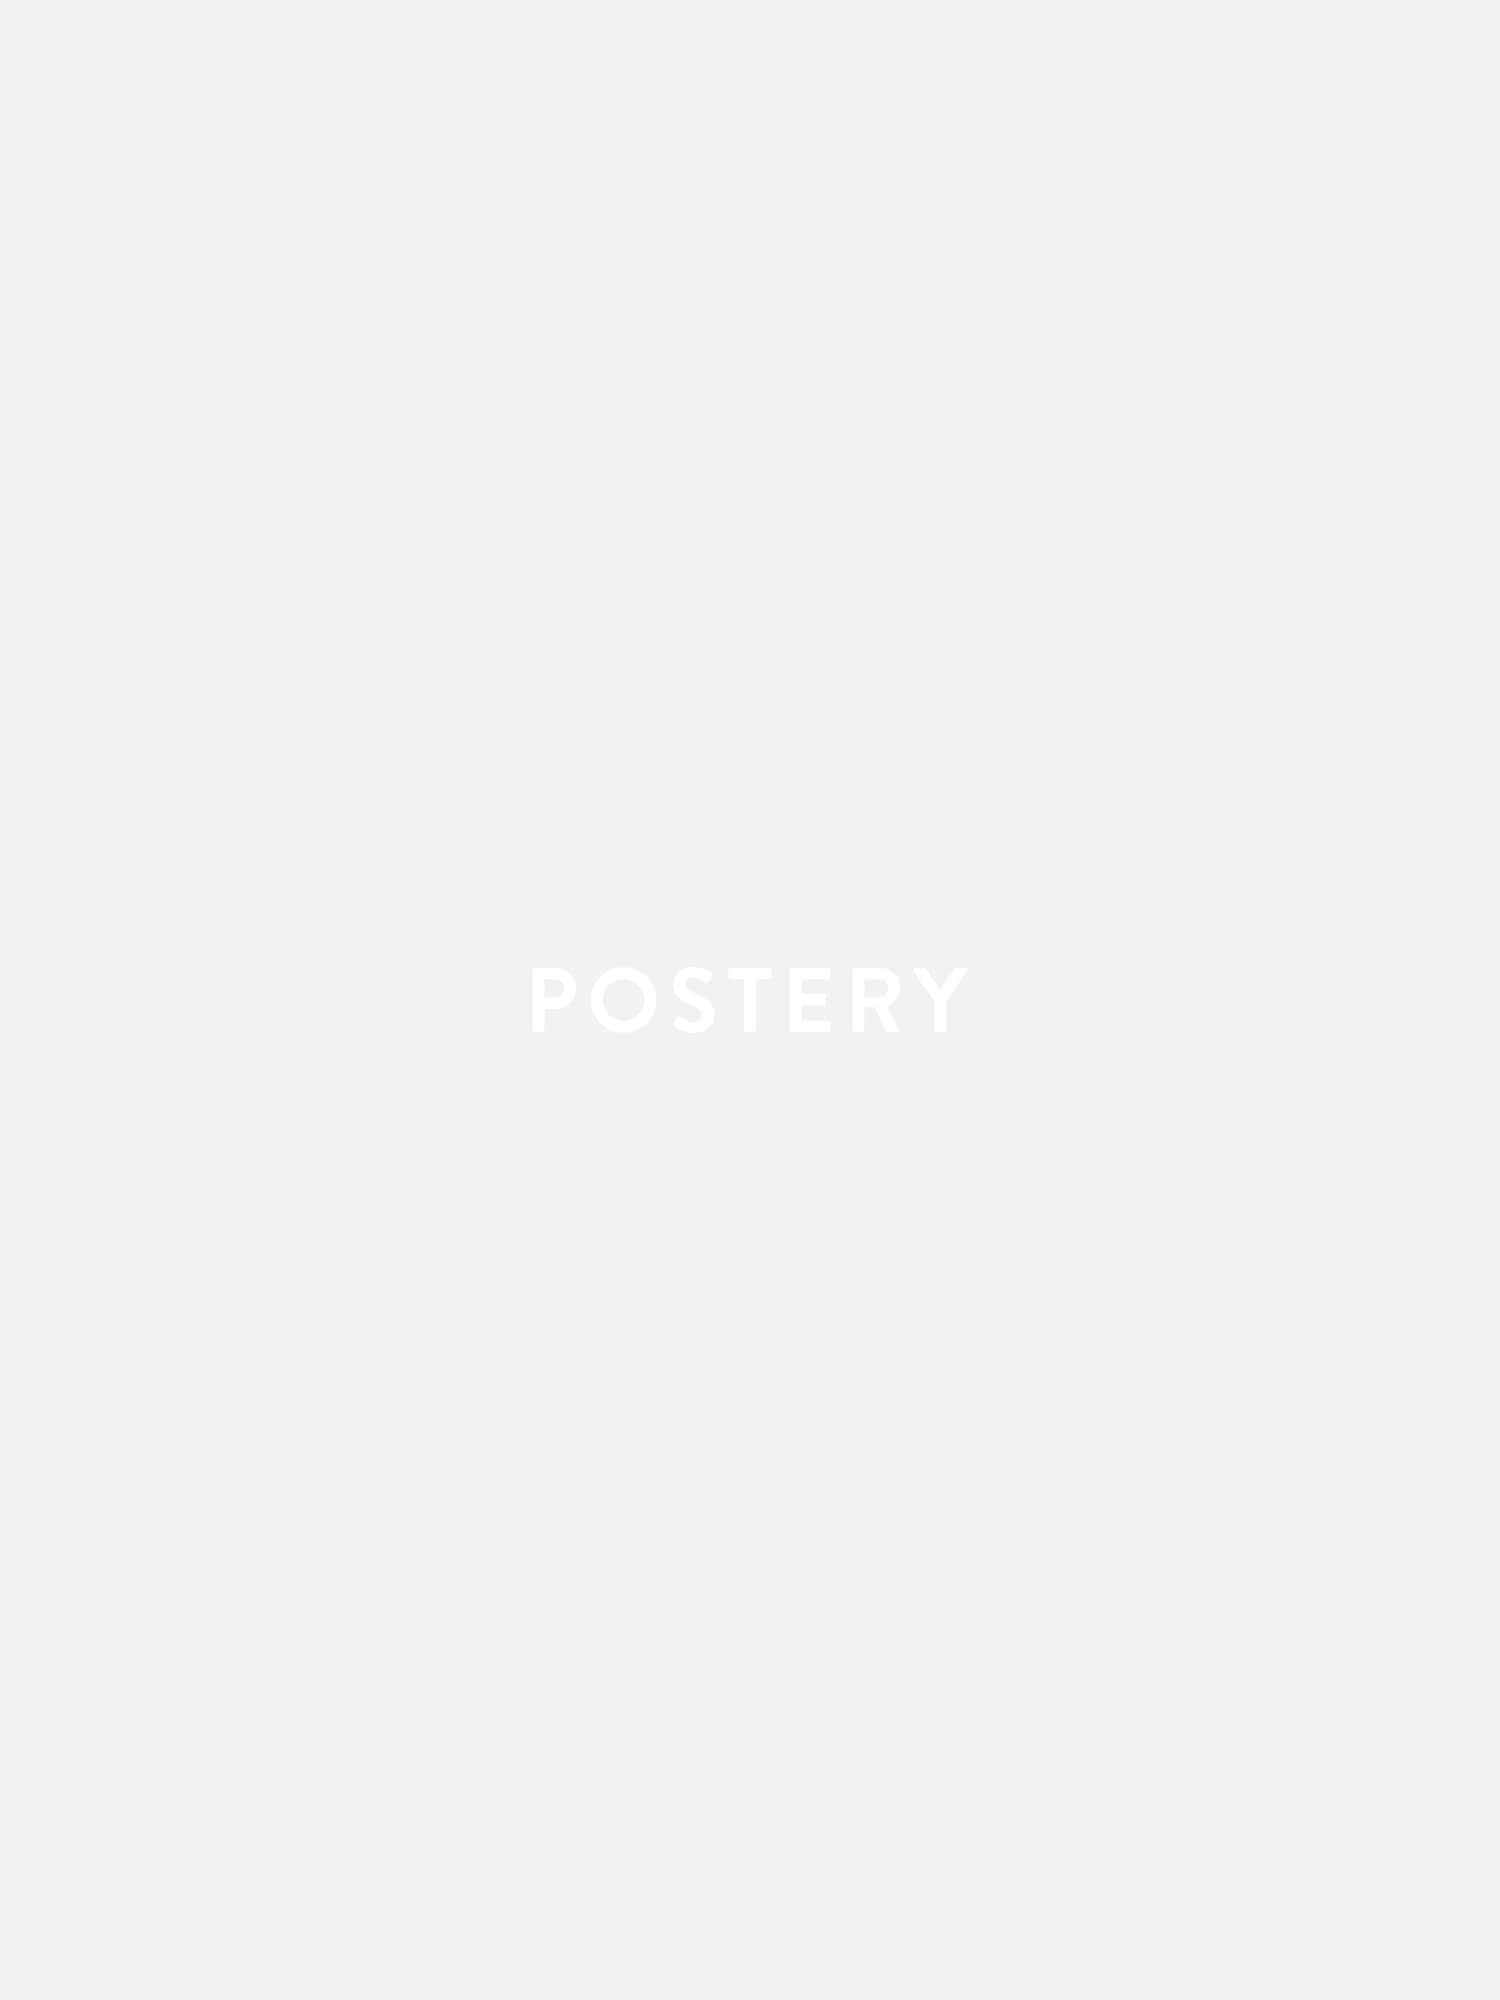 Your Own Grass Poster